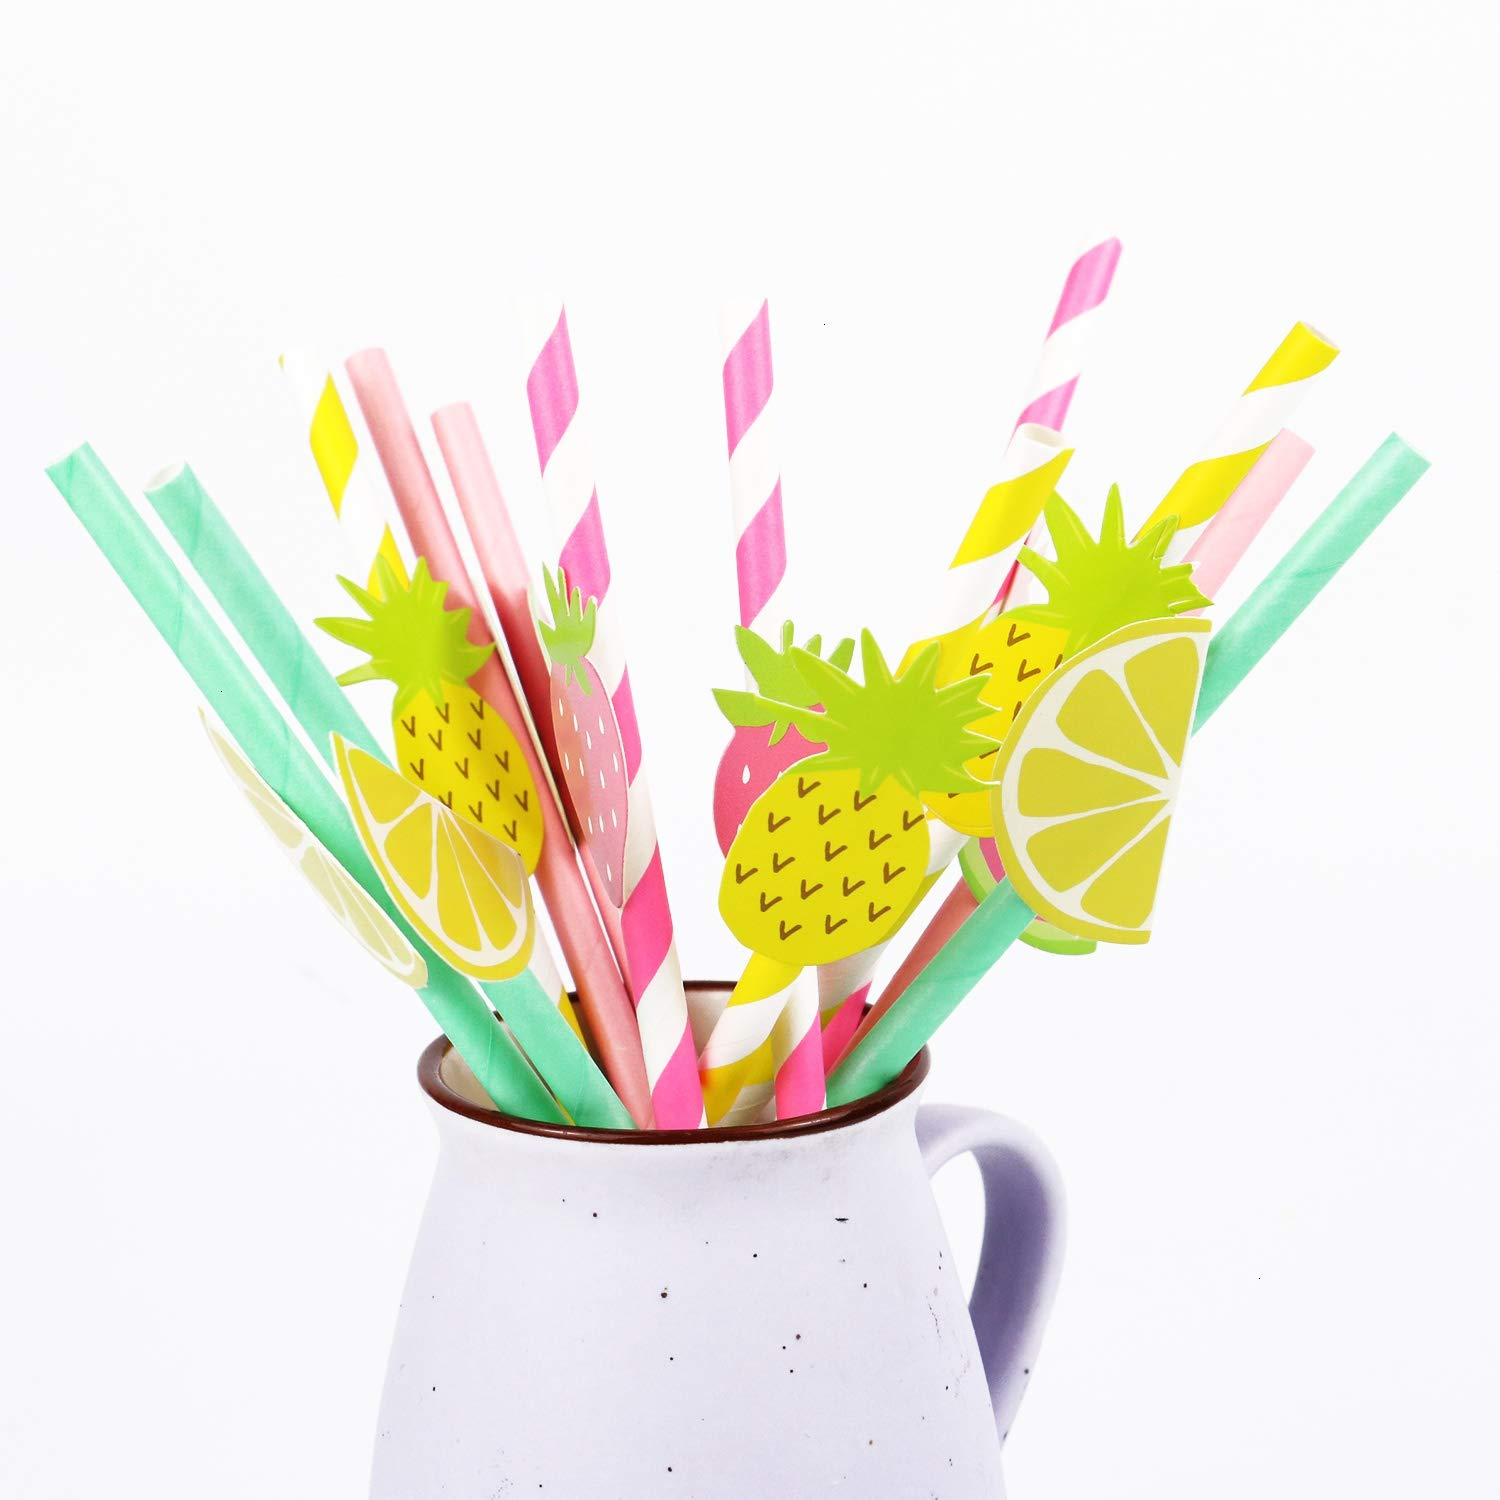 50 Pieces Disposable Party Drinking Straws Pineapple /& Watermelon Mixed